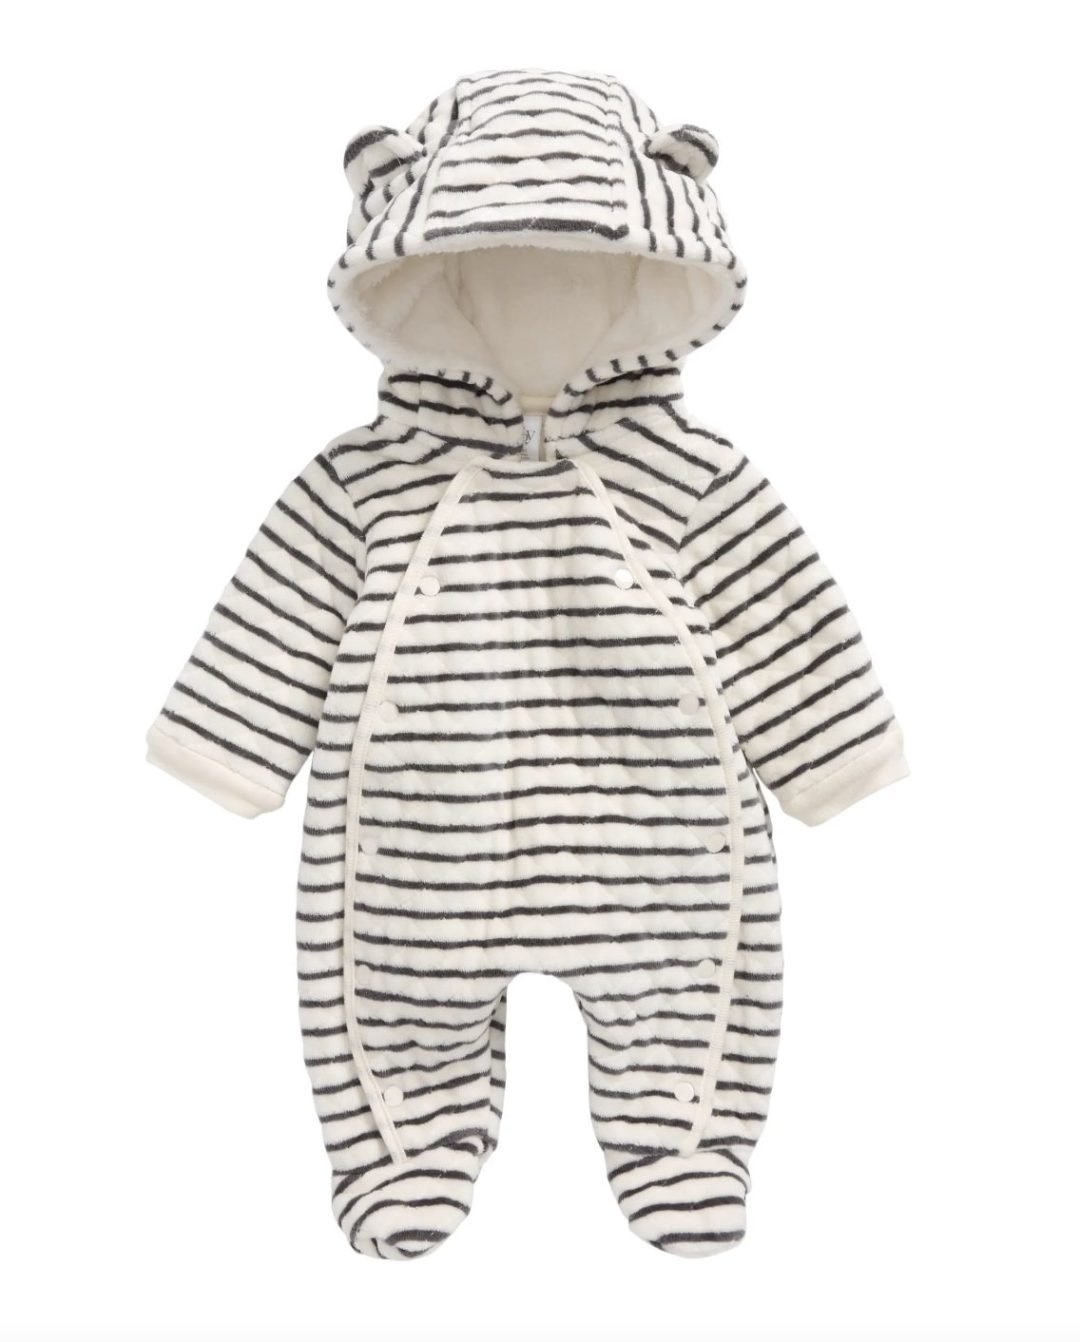 Striped onesie for baby boys